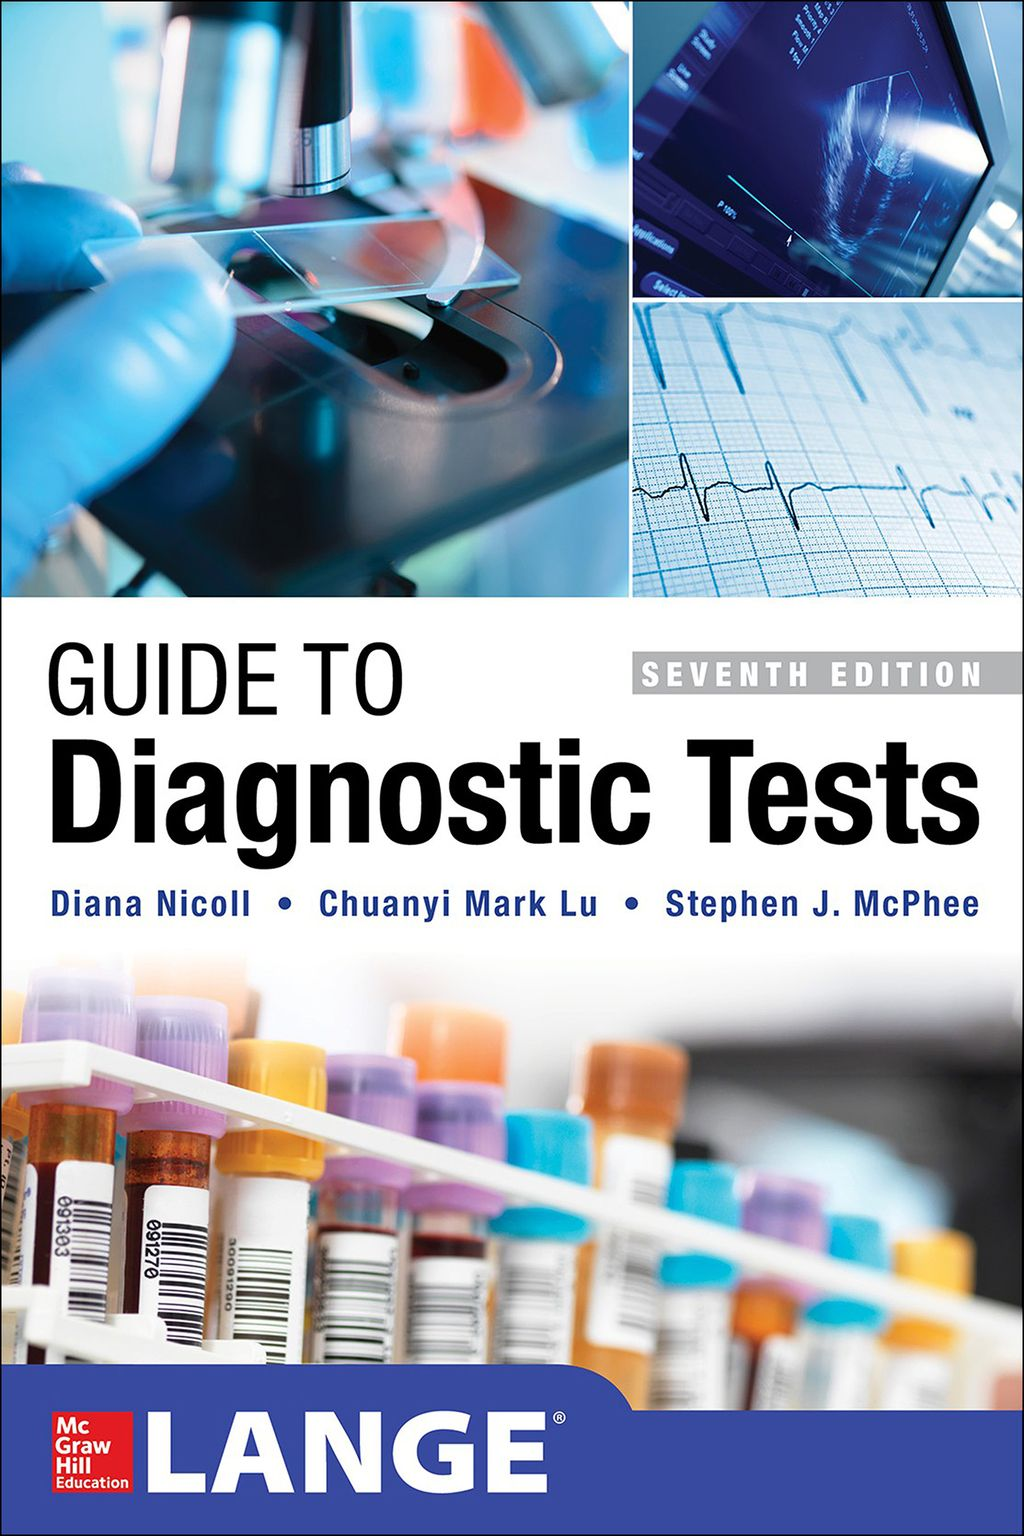 Guide to Diagnostic Tests Seventh Edition (eBook) in 2020